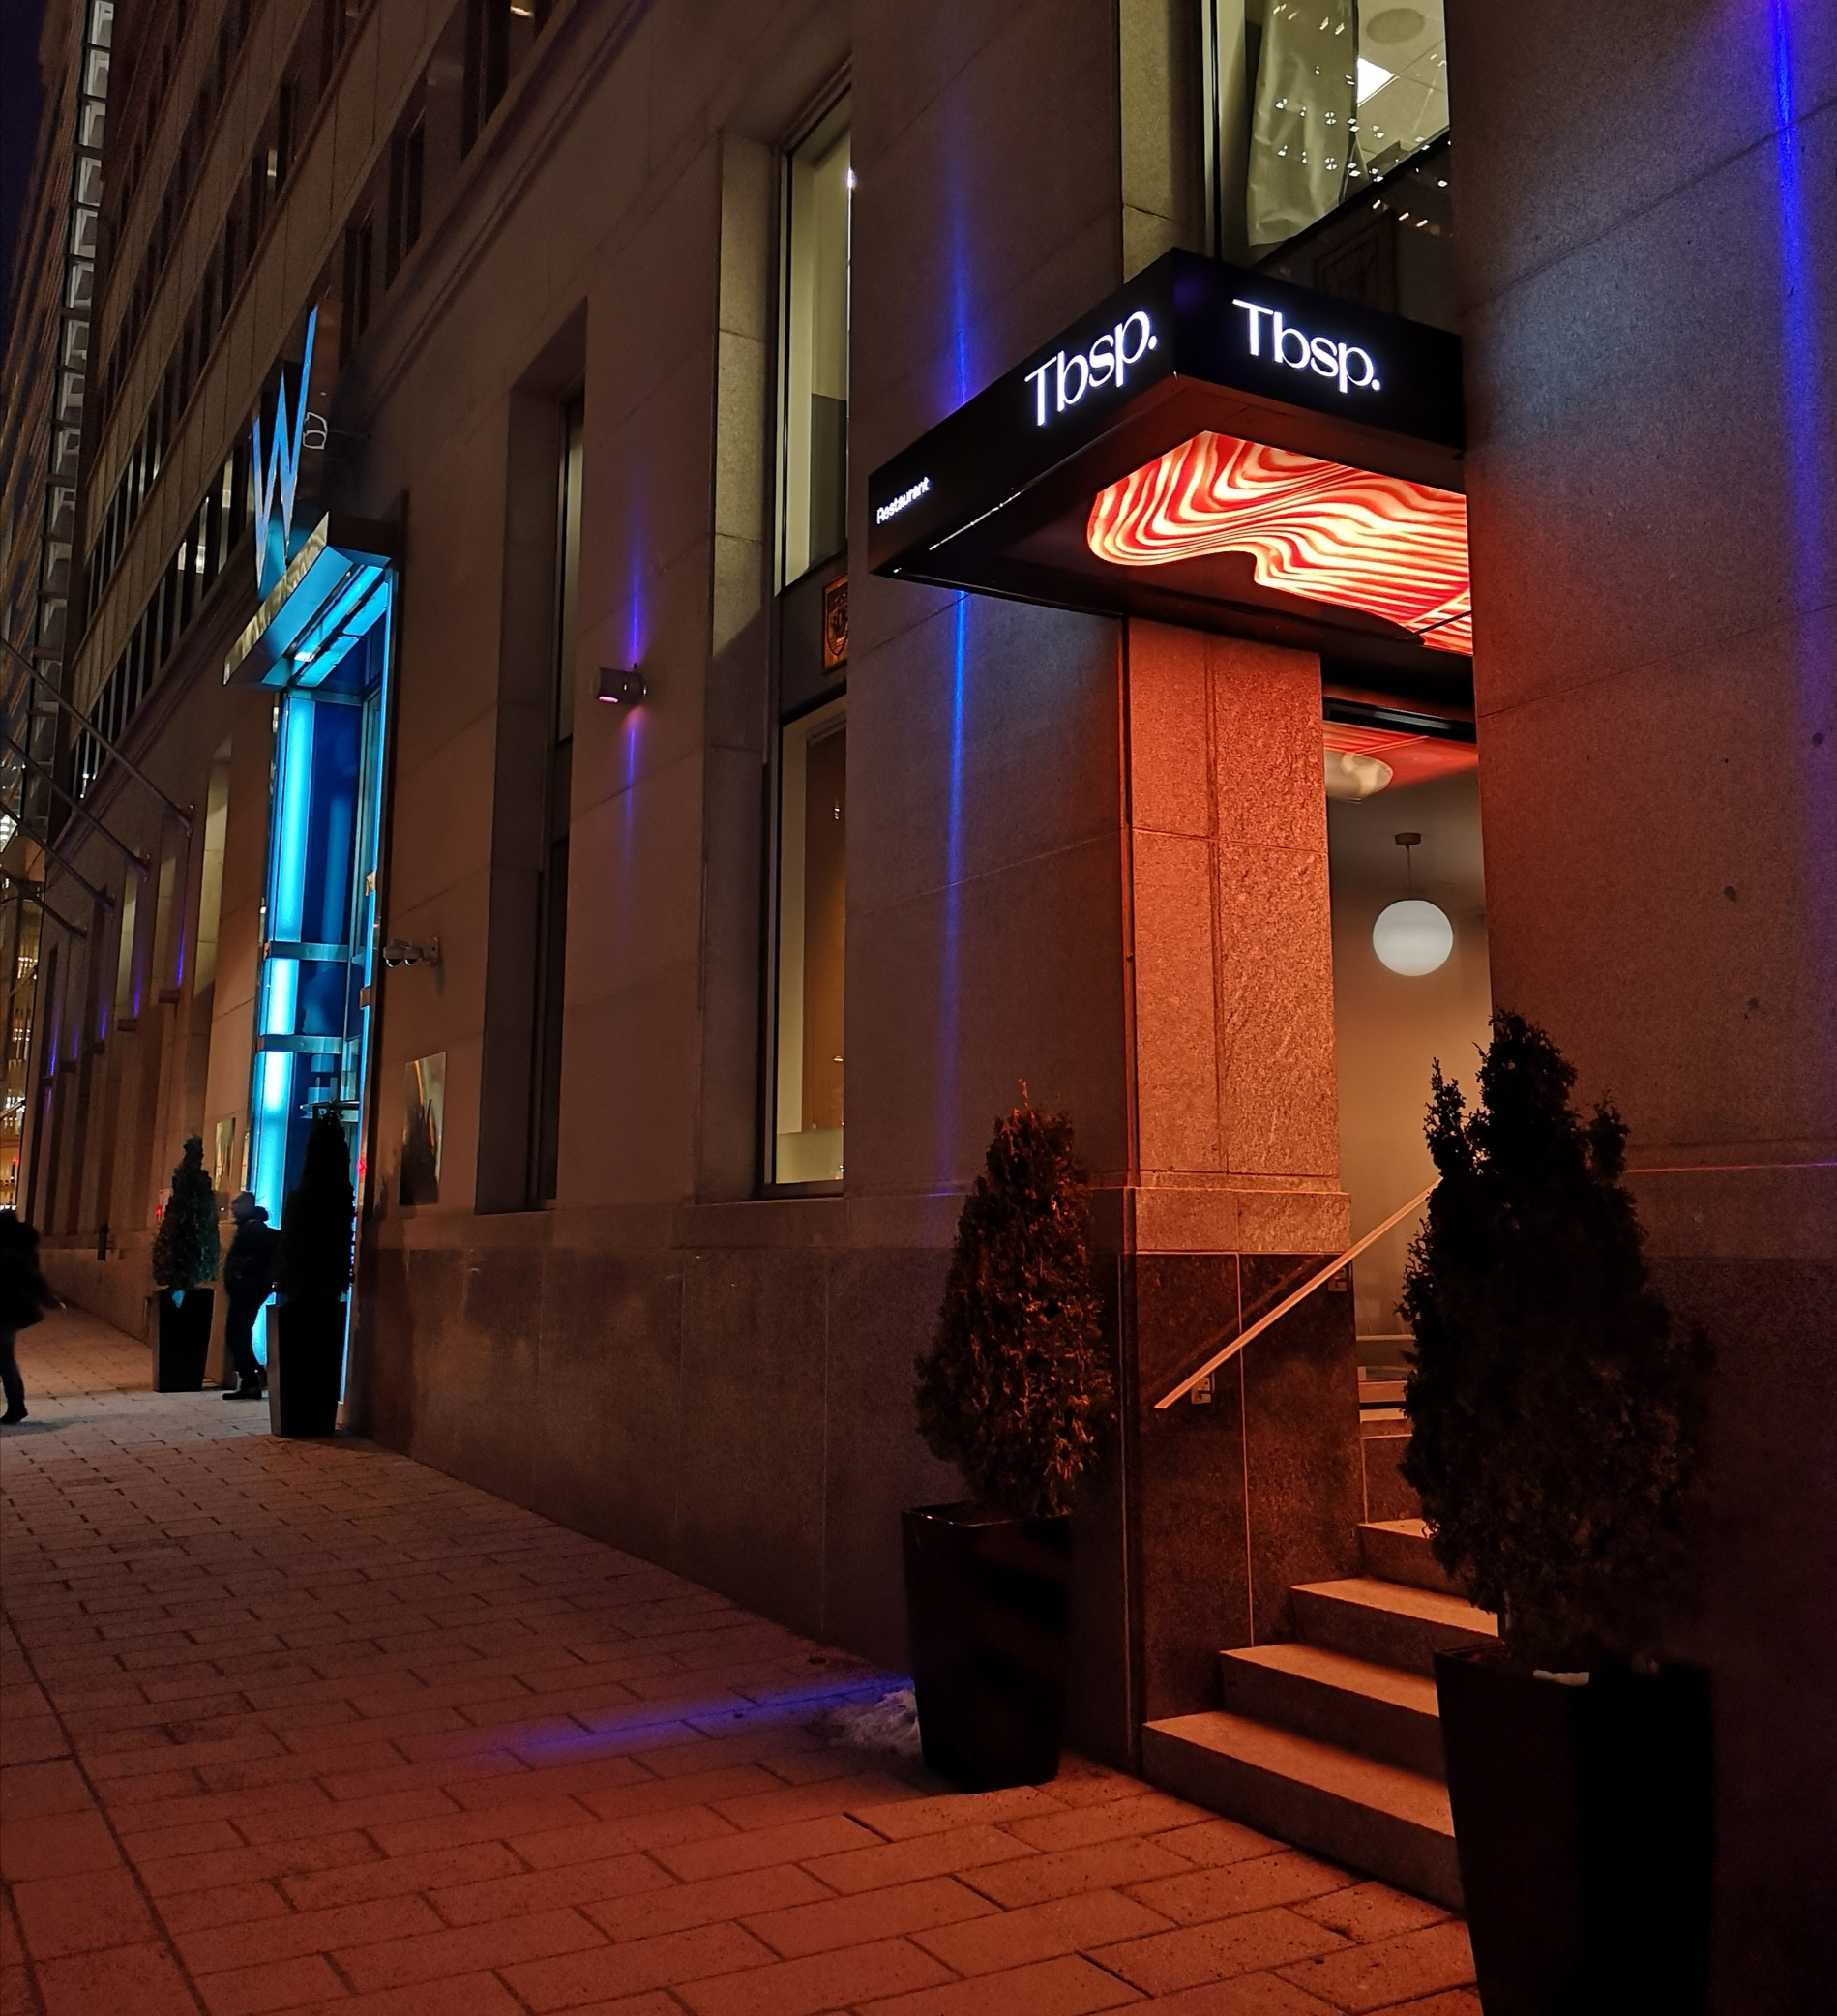 tbsp_montreal_hotel_w